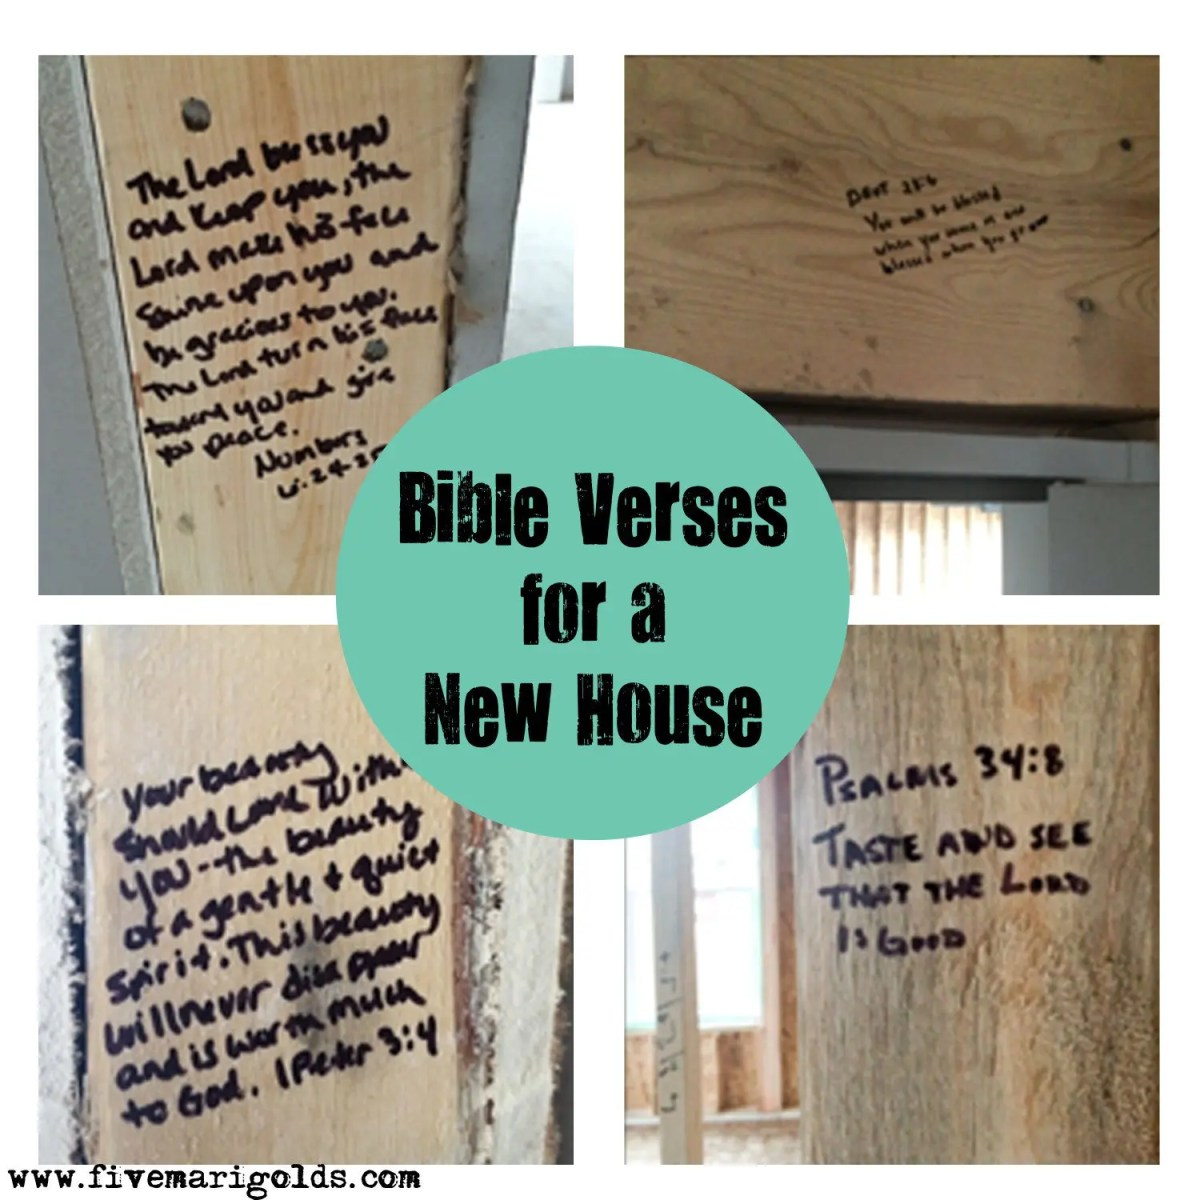 Strong foundations: bible verses for a new house